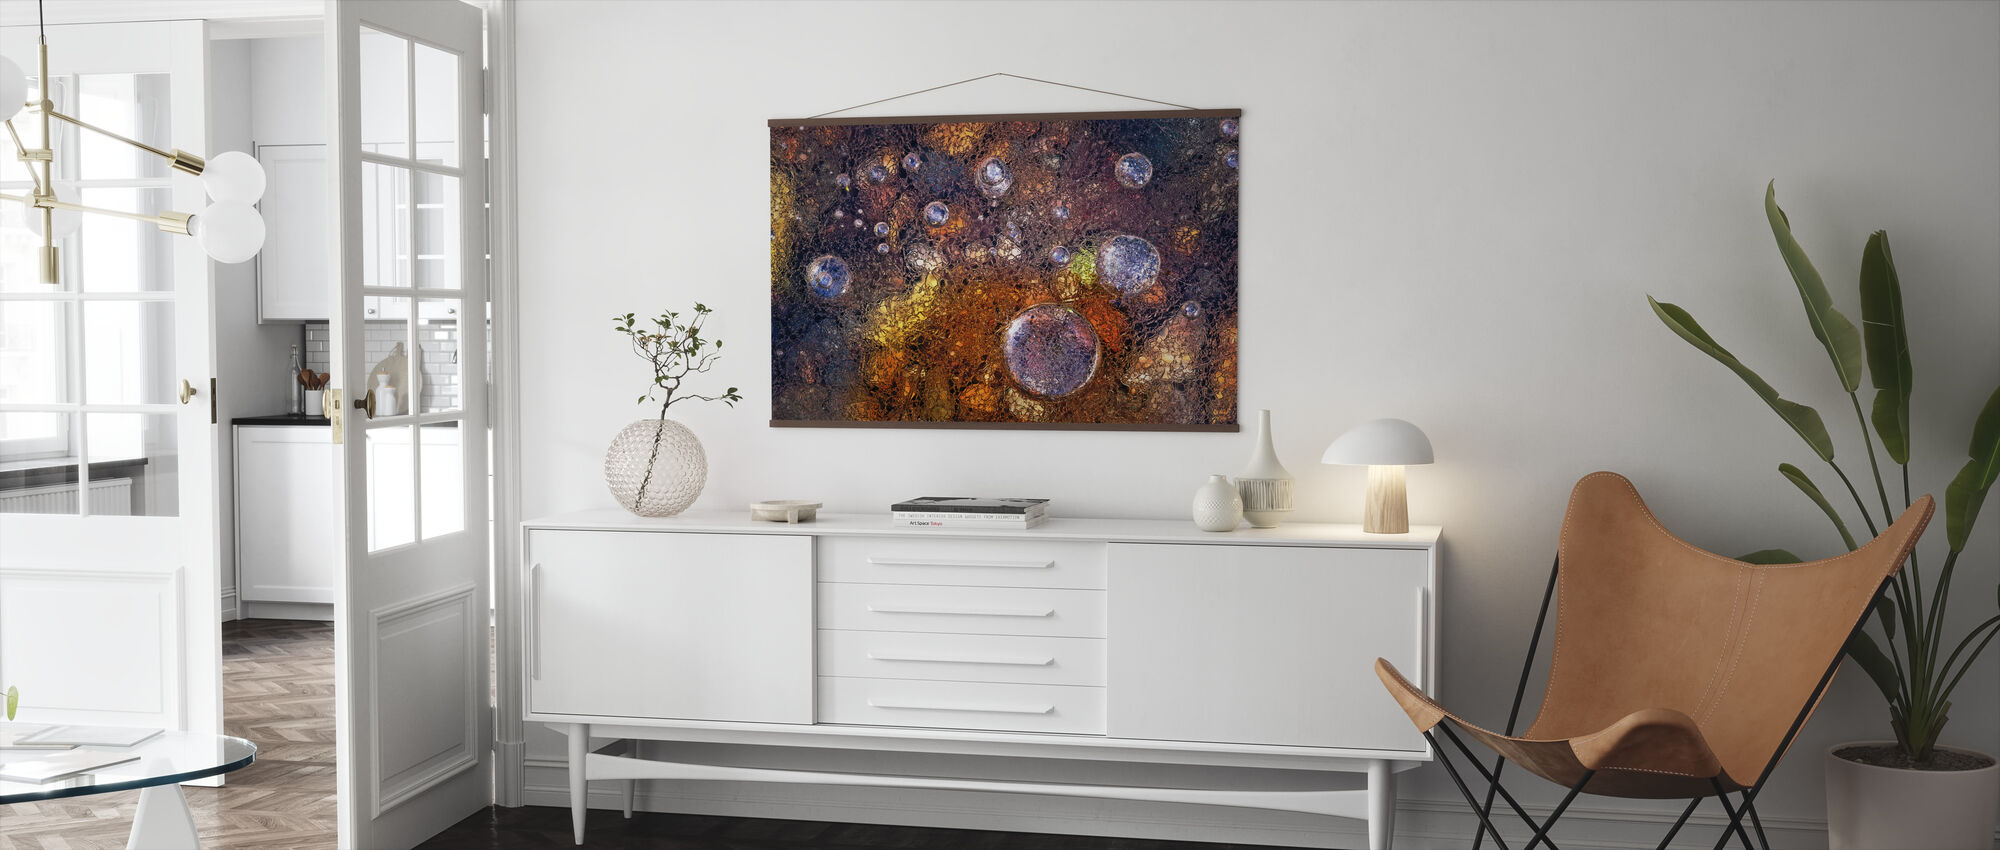 Winter Over Autumn - Poster - Living Room